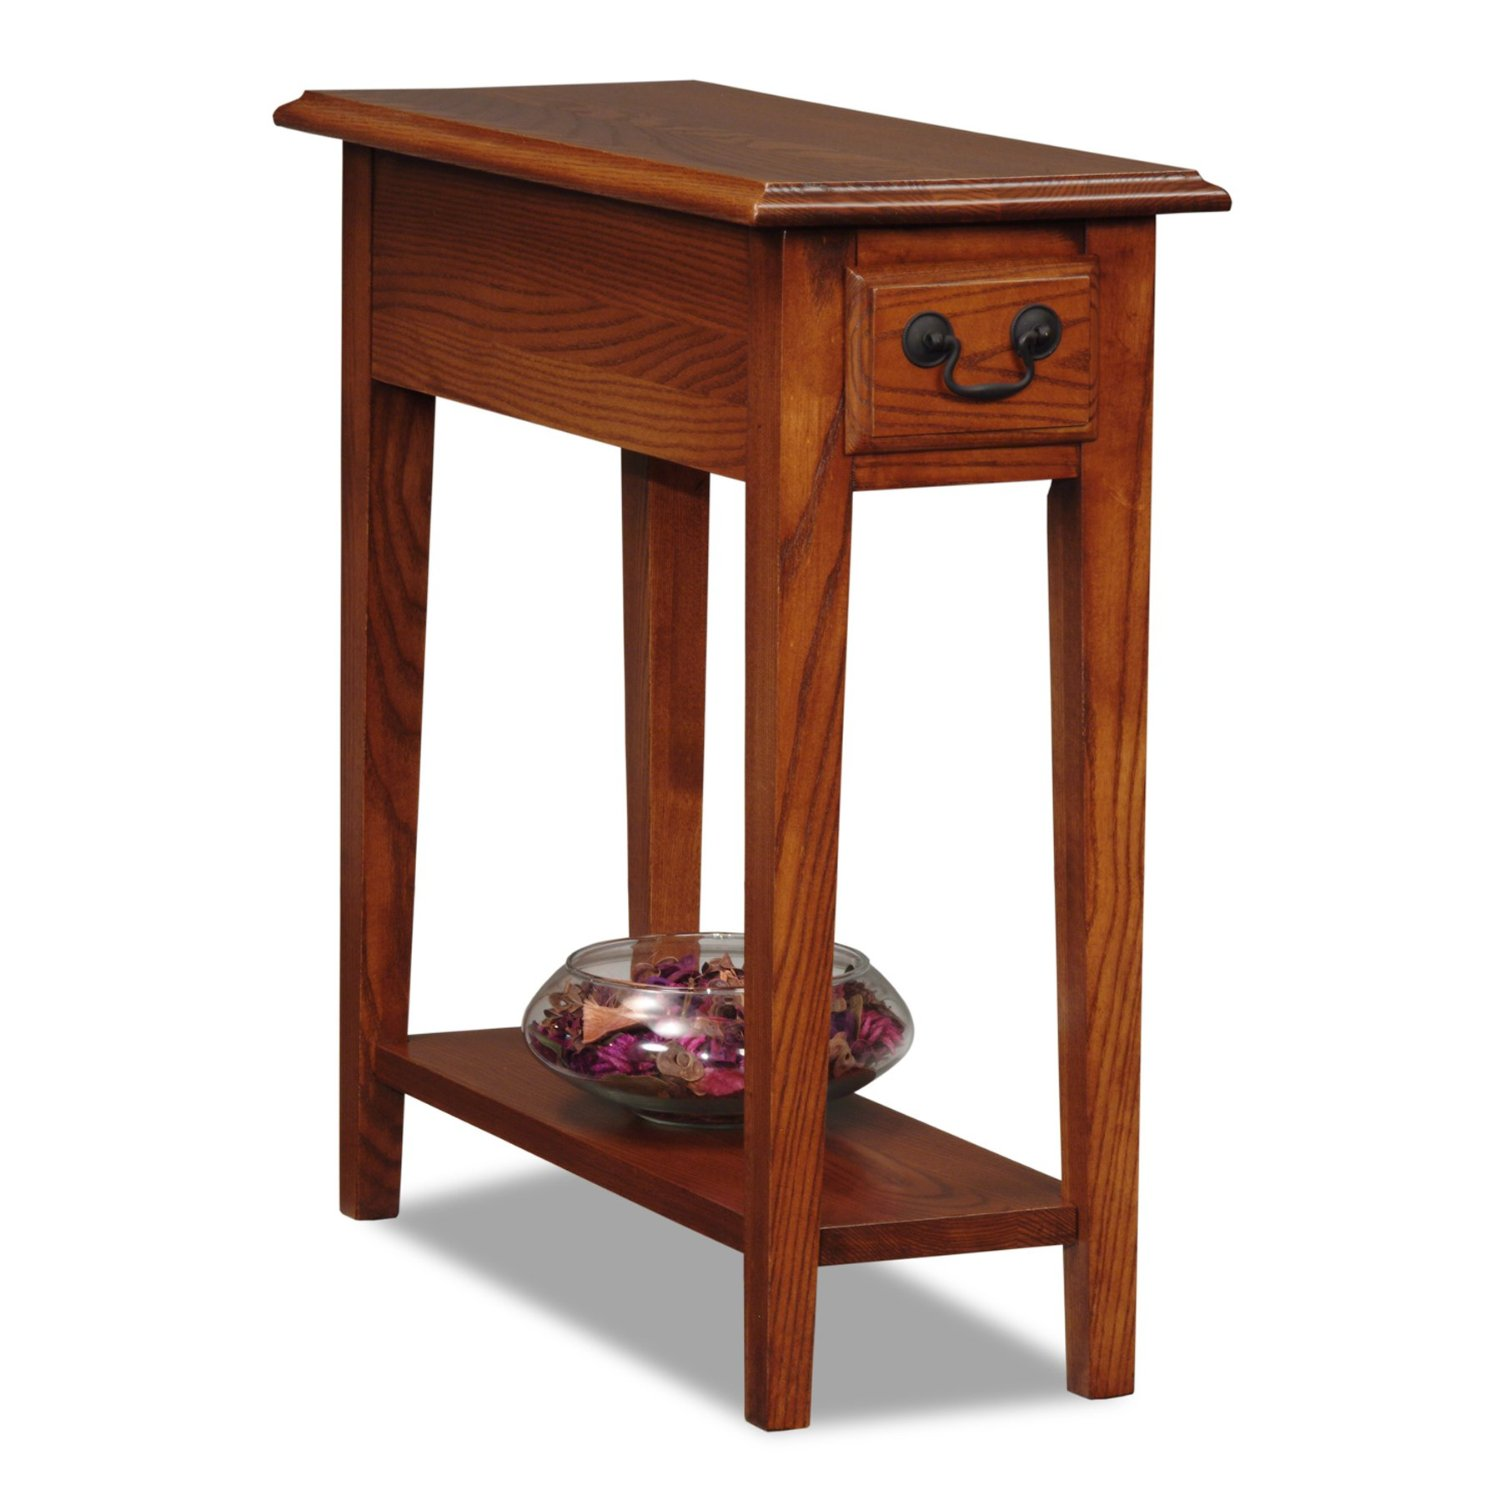 oak end tables with drawers home furniture design oval accent table winsome daniel drawer black finish pink lamp shade bar height bistro set very slim side super skinny perspex